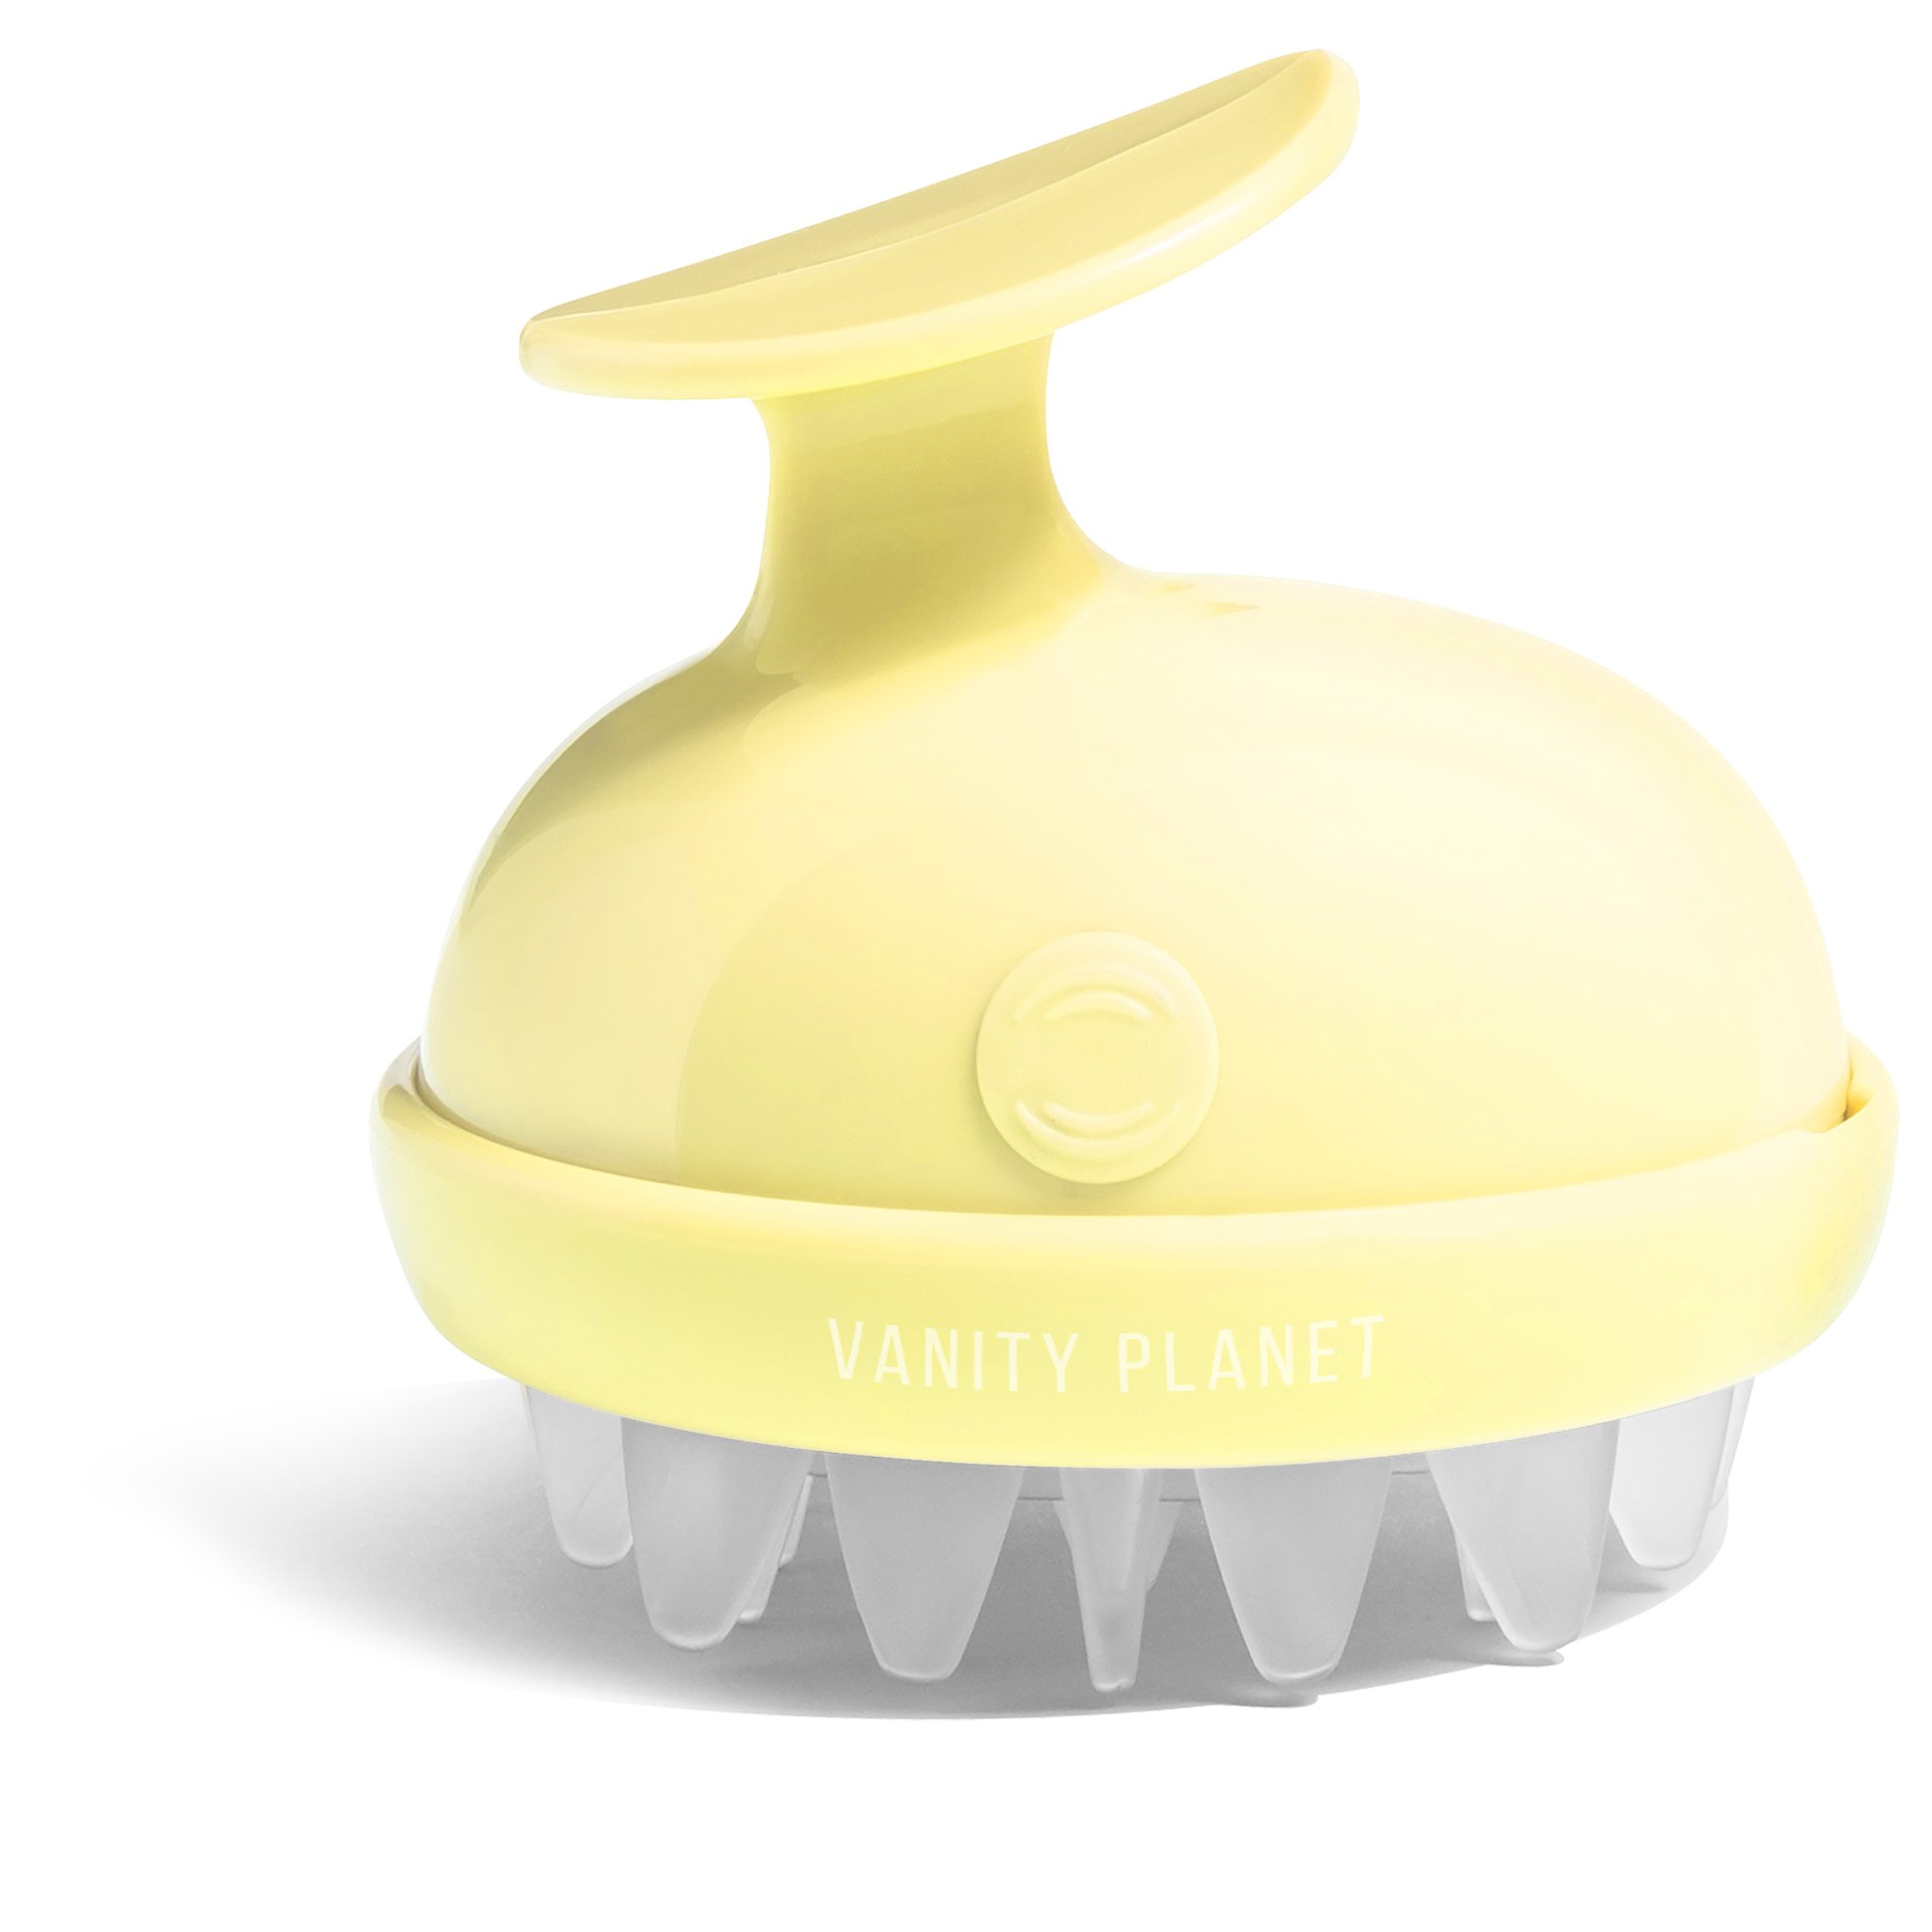 Vanity Planet Groove Rejuvenating Scalp Massager, 2-Speed Vibrating, Hello Yellow by Vanity Planet (Image #3)